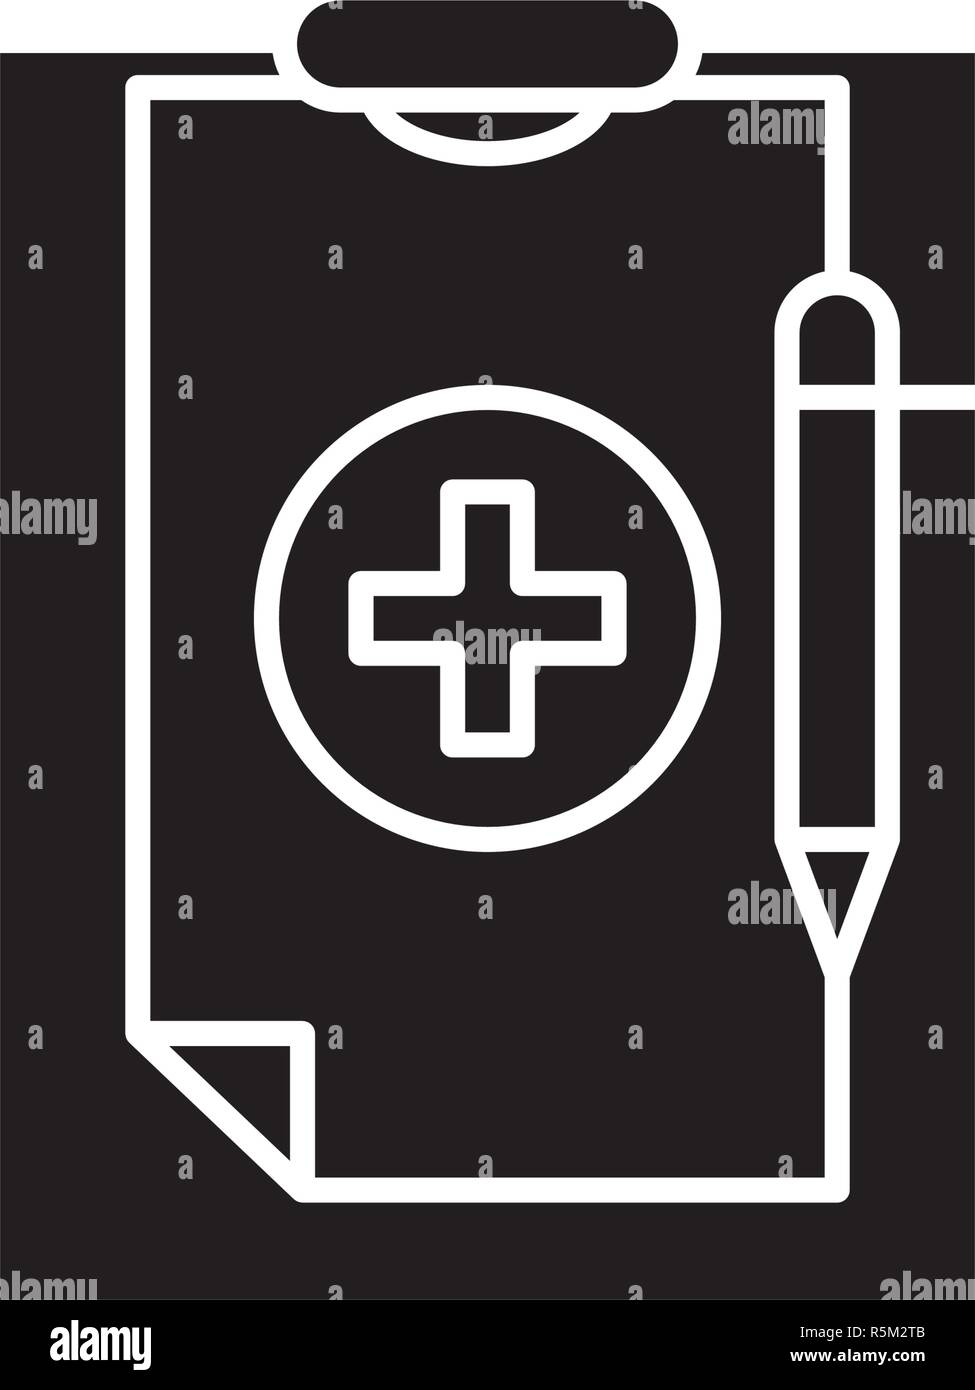 Medical diagnosis black icon, vector sign on isolated background. Medical diagnosis concept symbol, illustration  - Stock Image